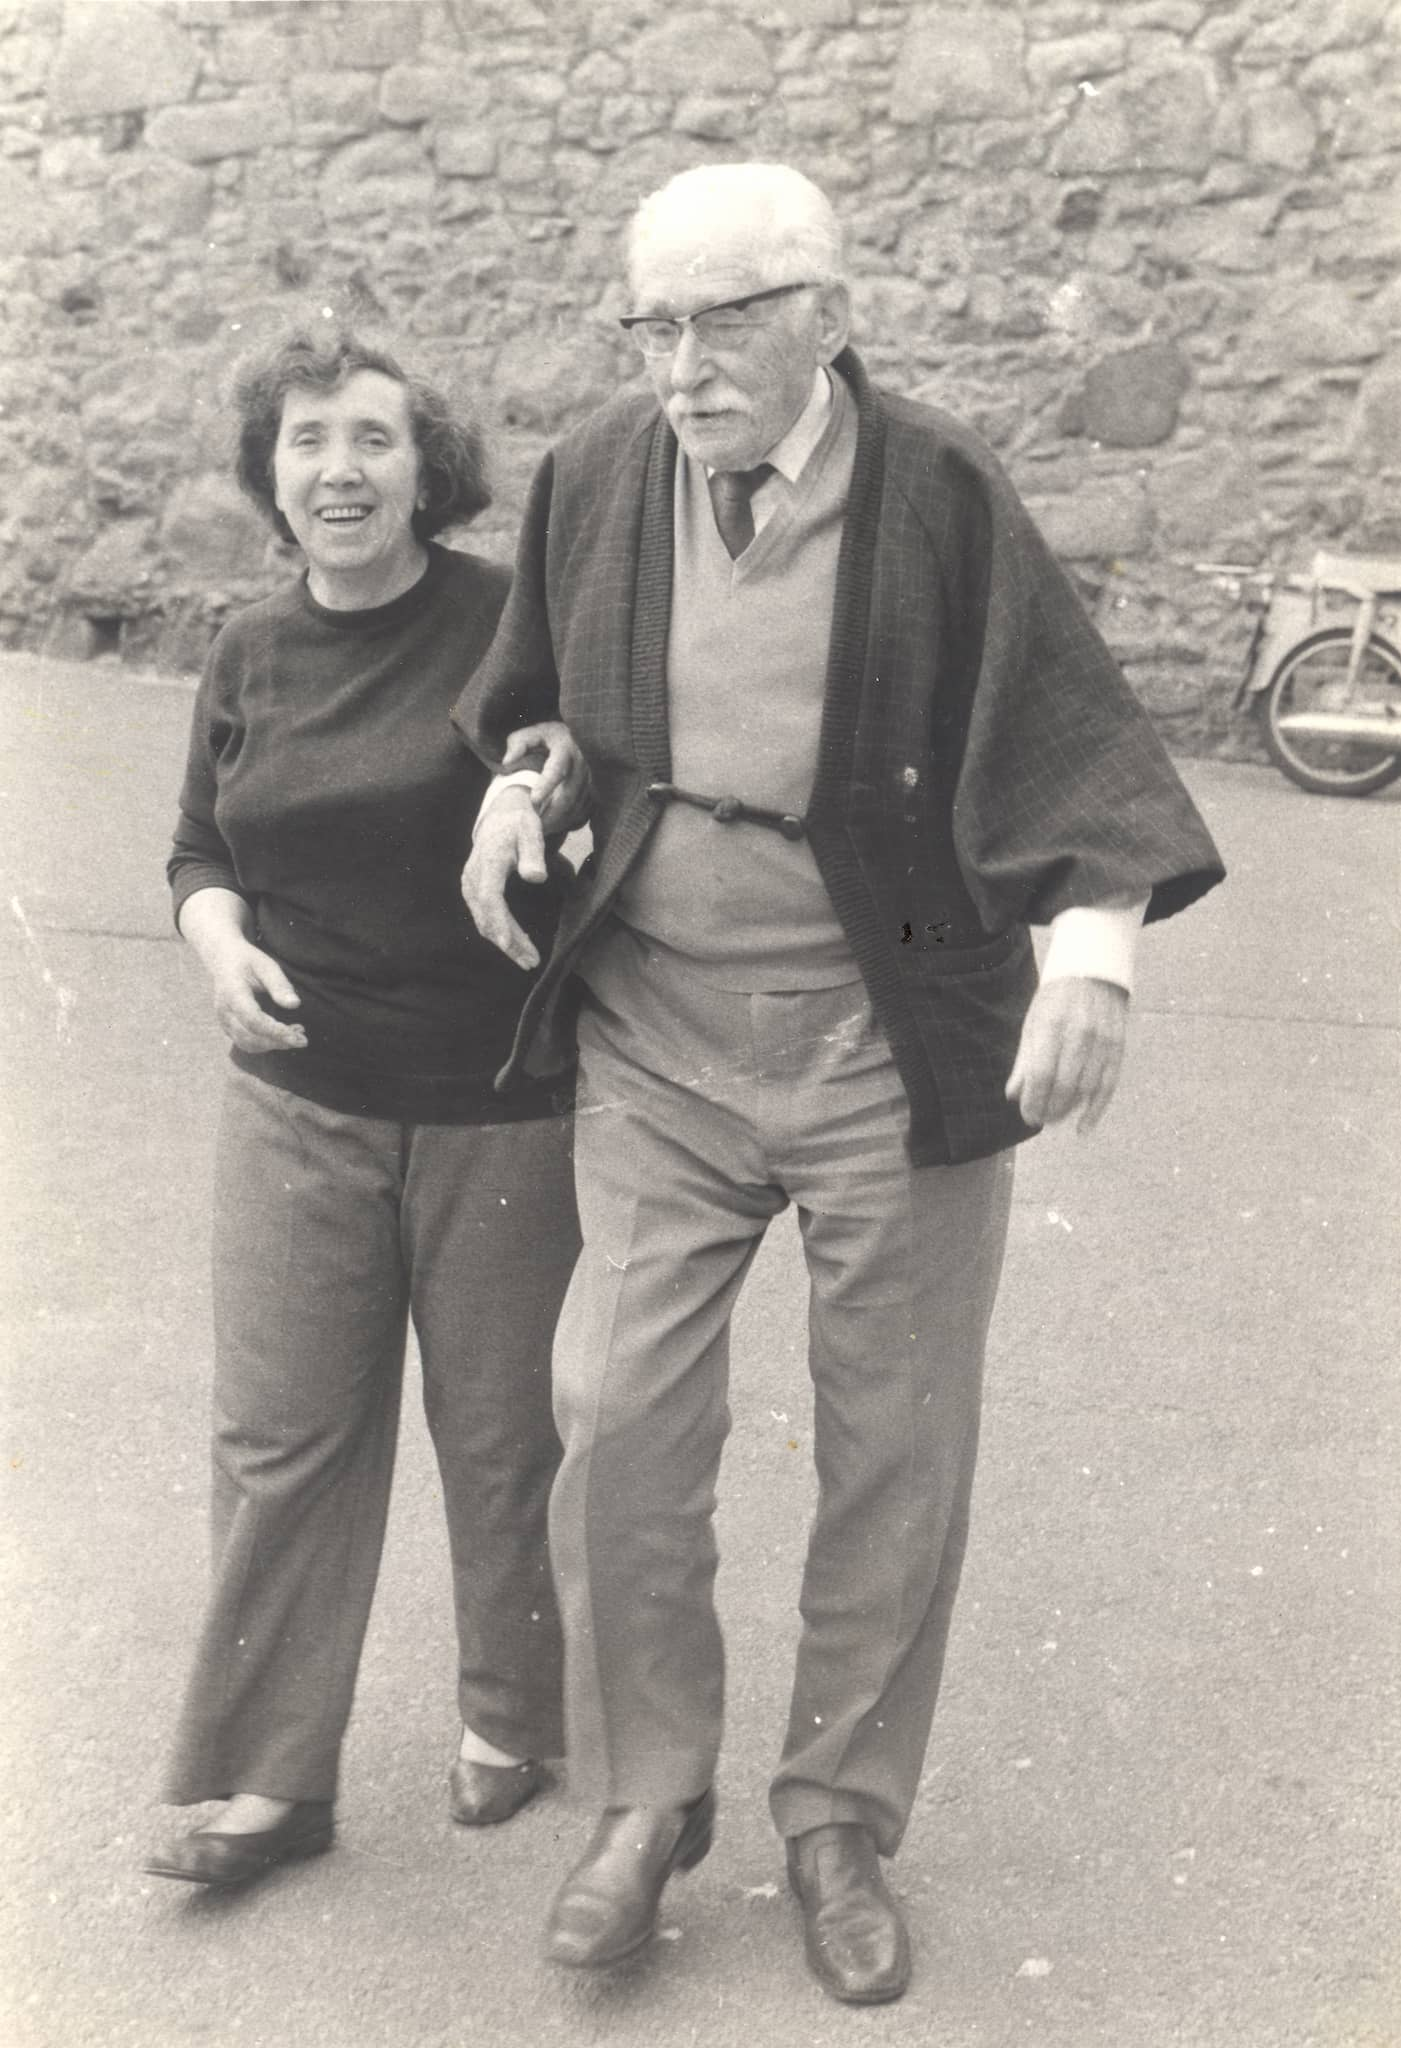 Bernard Leach and Trudi Scott. Courtesy of Jeff Oestreich. Craft in America CROSSROADS